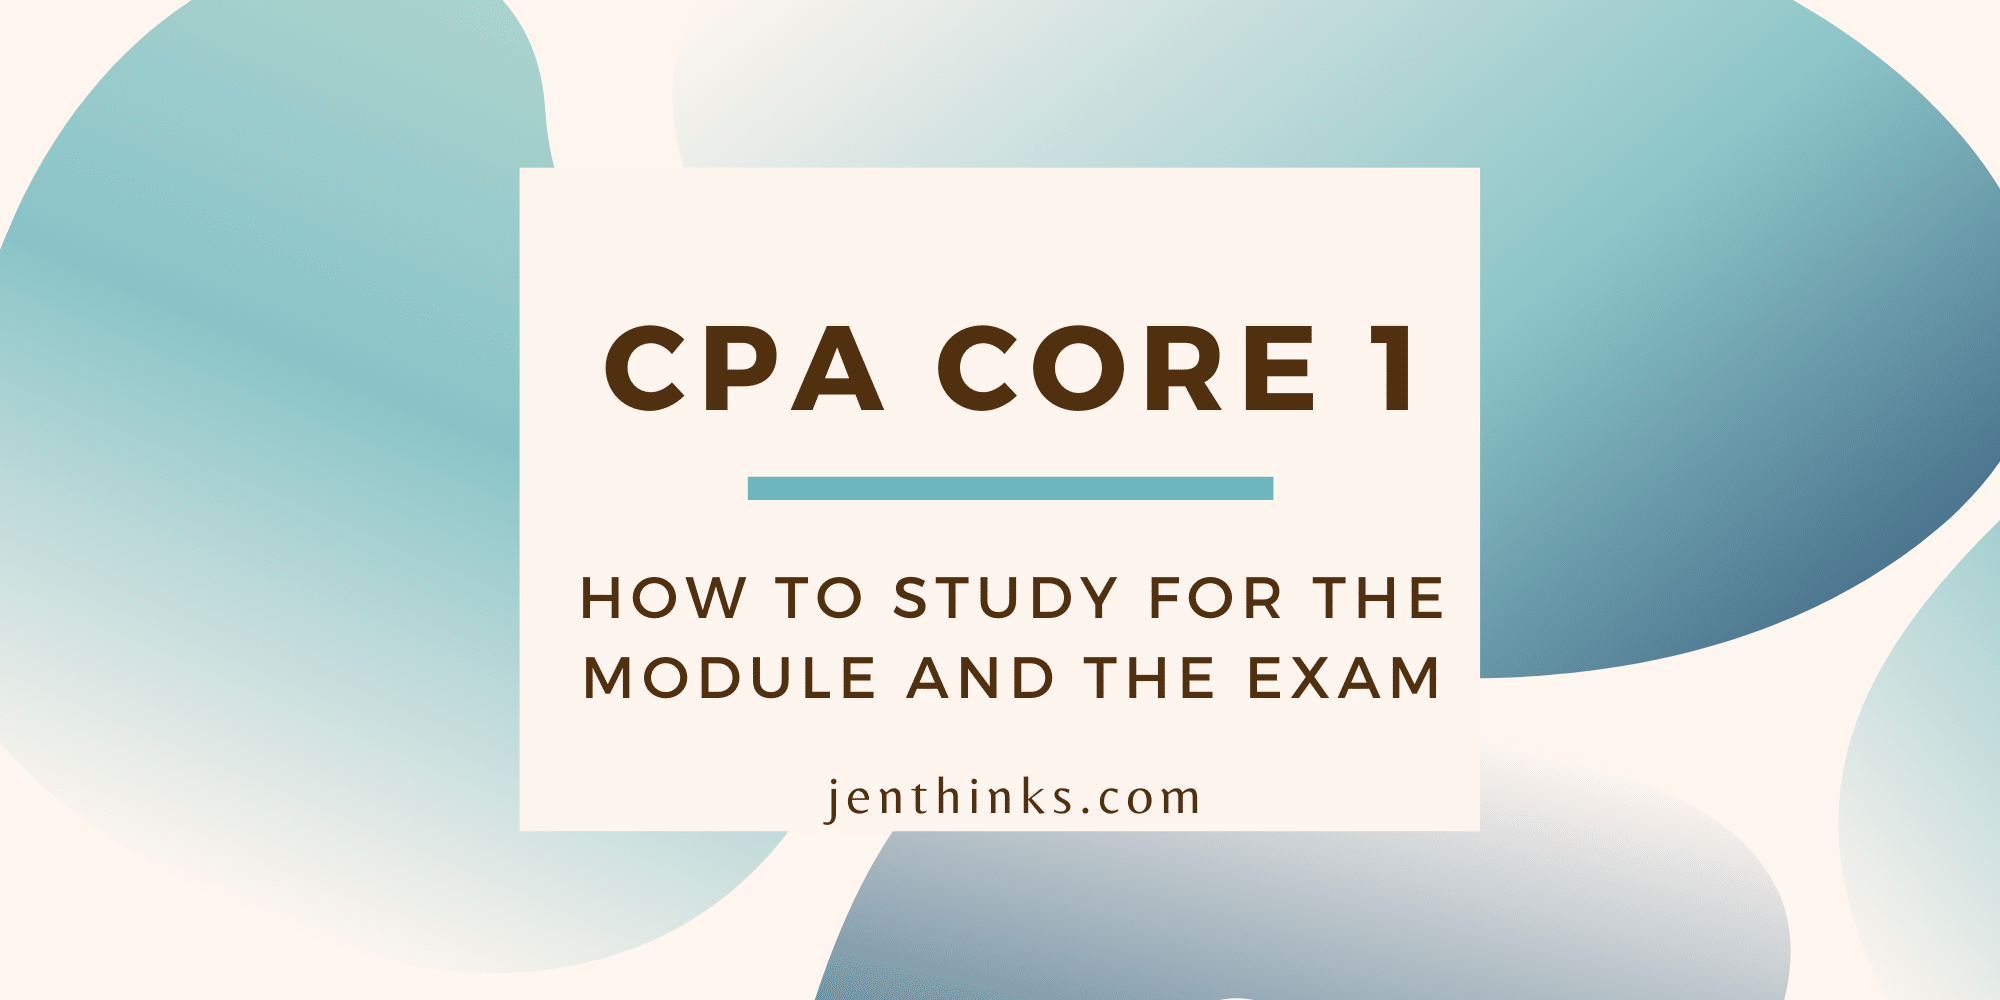 CPA Core 1 Tips